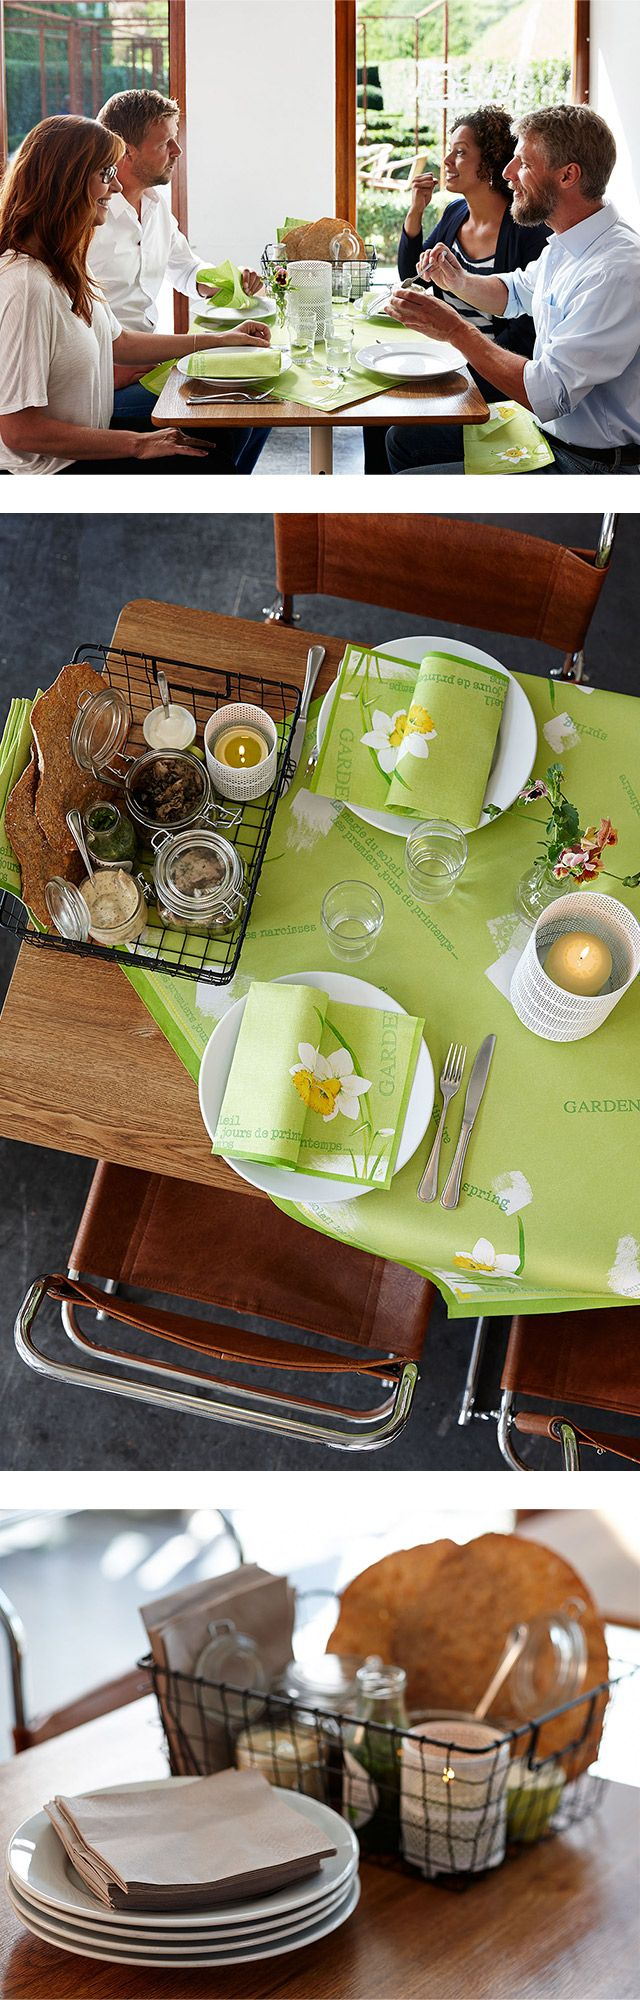 Spring day - life-enhancing easter theme with a touch of vintage